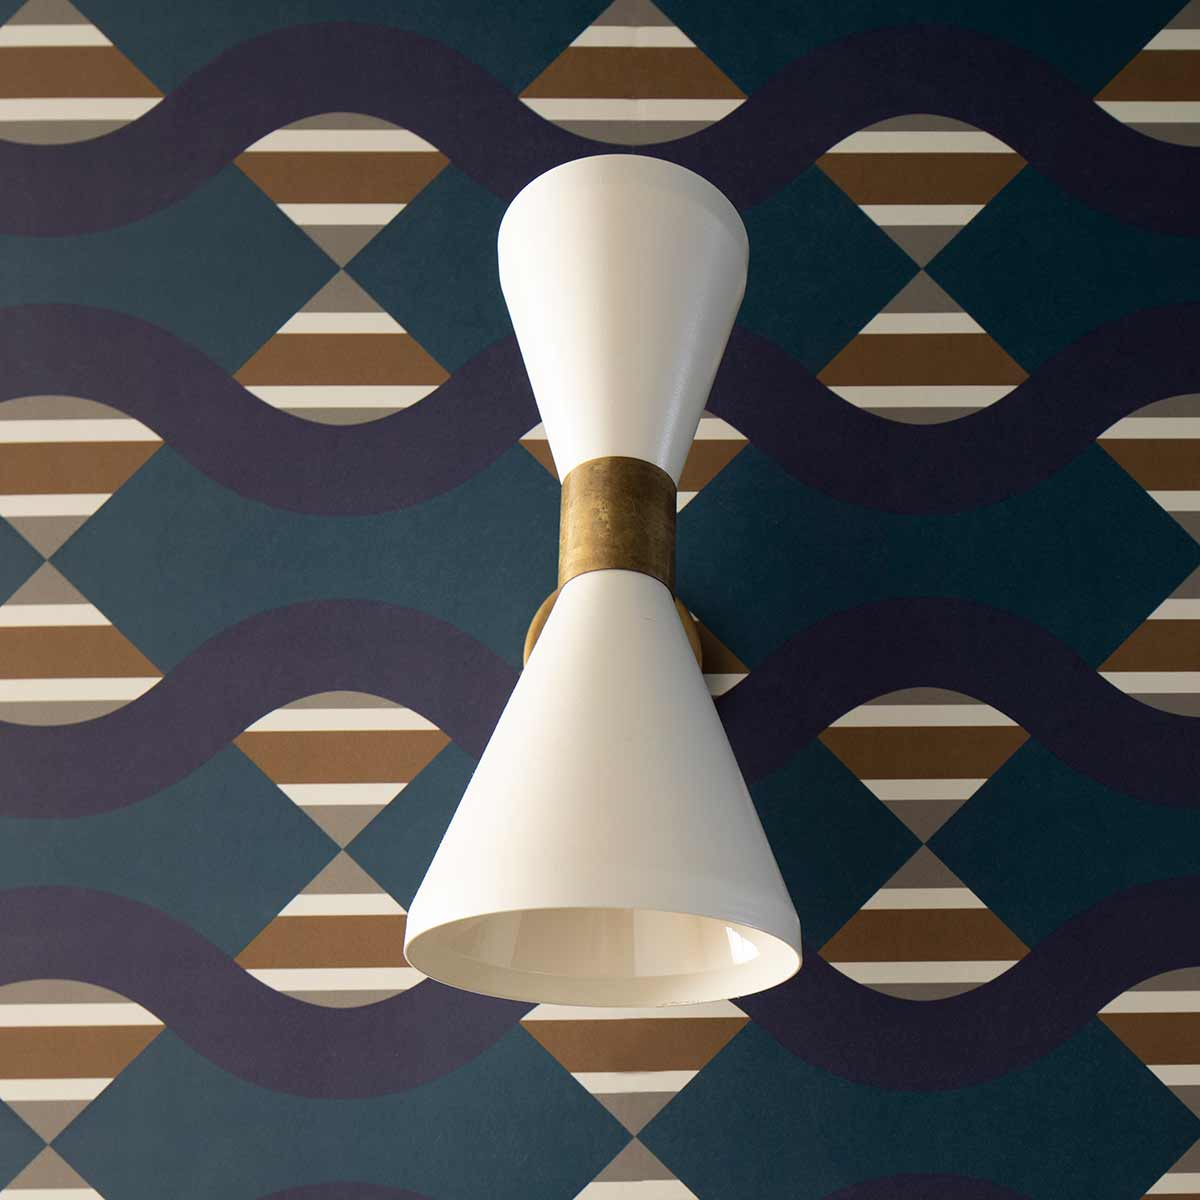 kickoffice casa dgp wallpaper bedroom jupiter10 blue applique detail